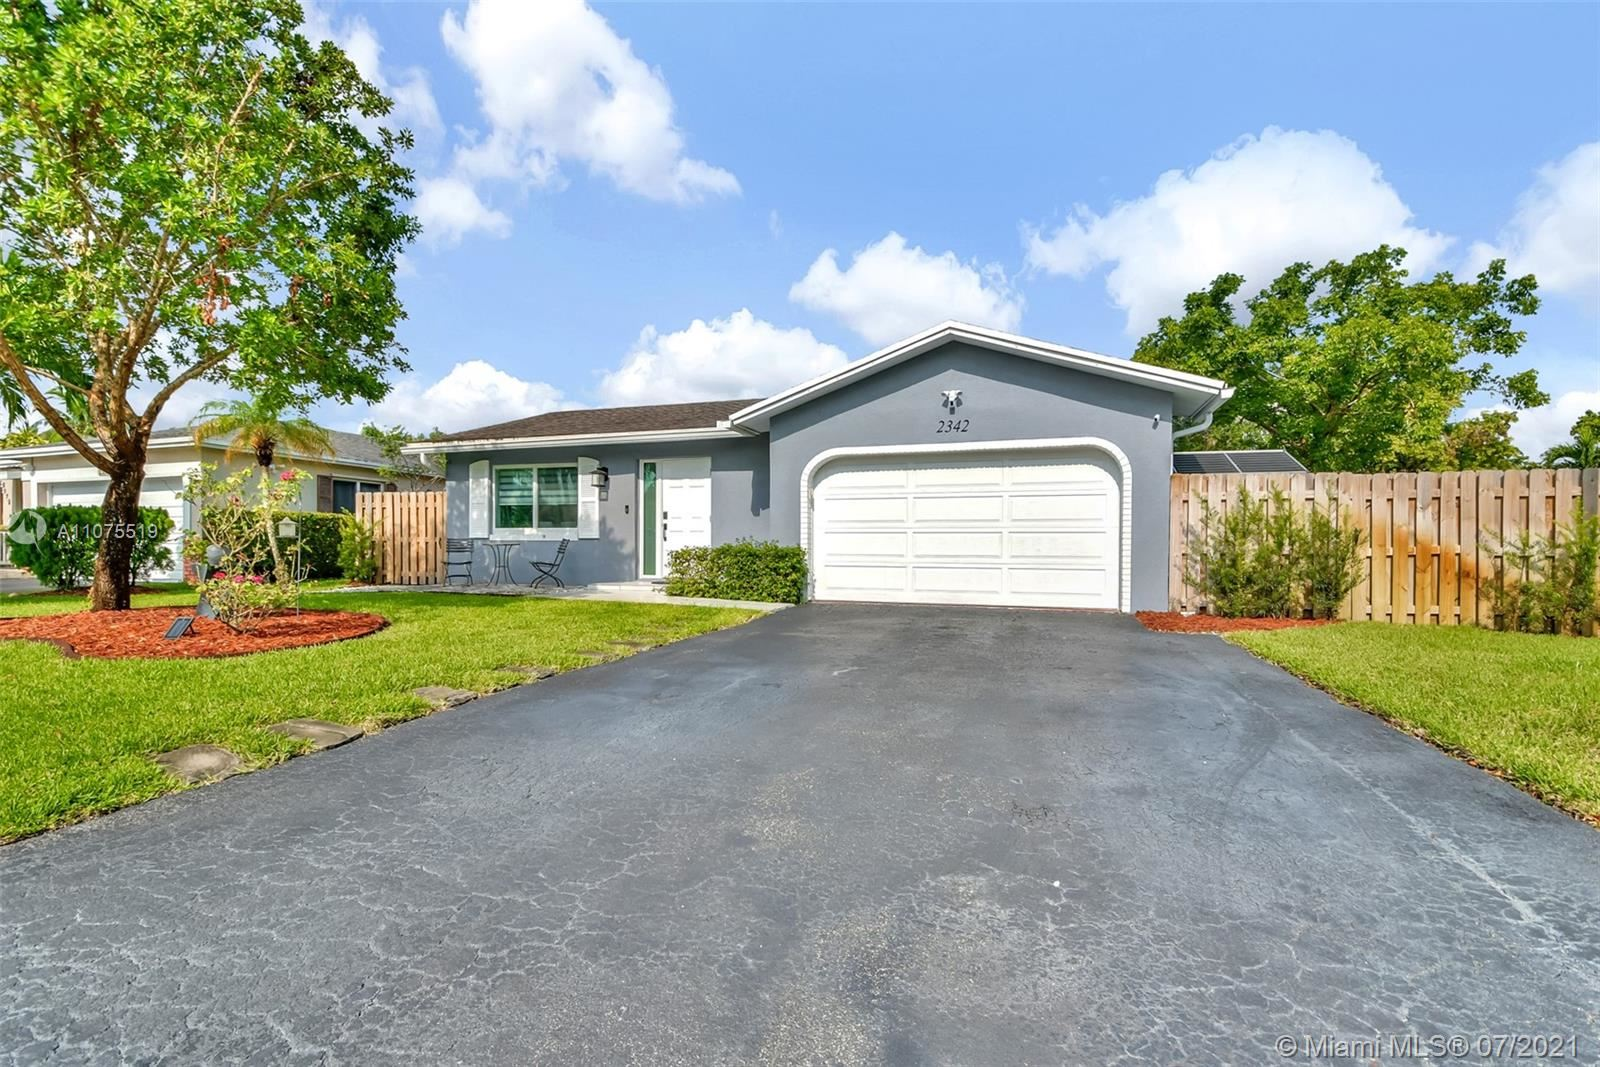 2342 NW 98th Ln, Coral Springs, FL 33065 - #: A11075519